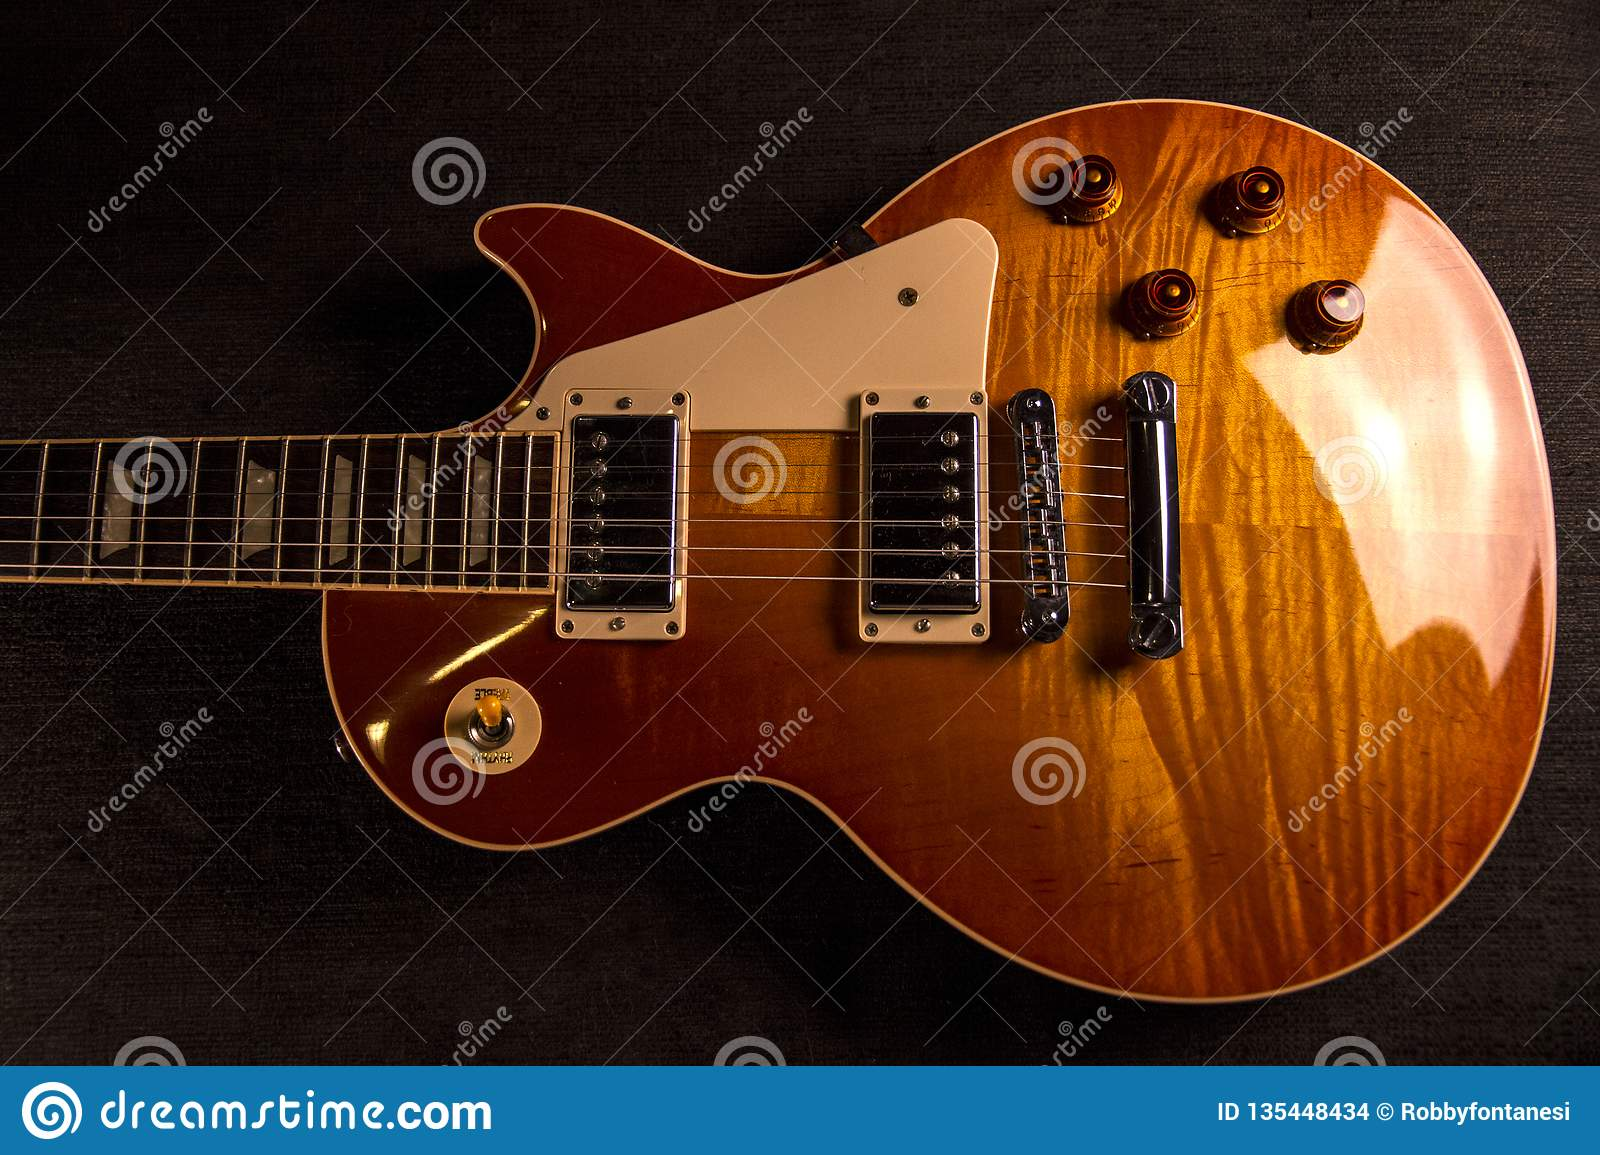 Vintage electric guitar with the perfect paint of a bright cherry color with almost metallic reflections